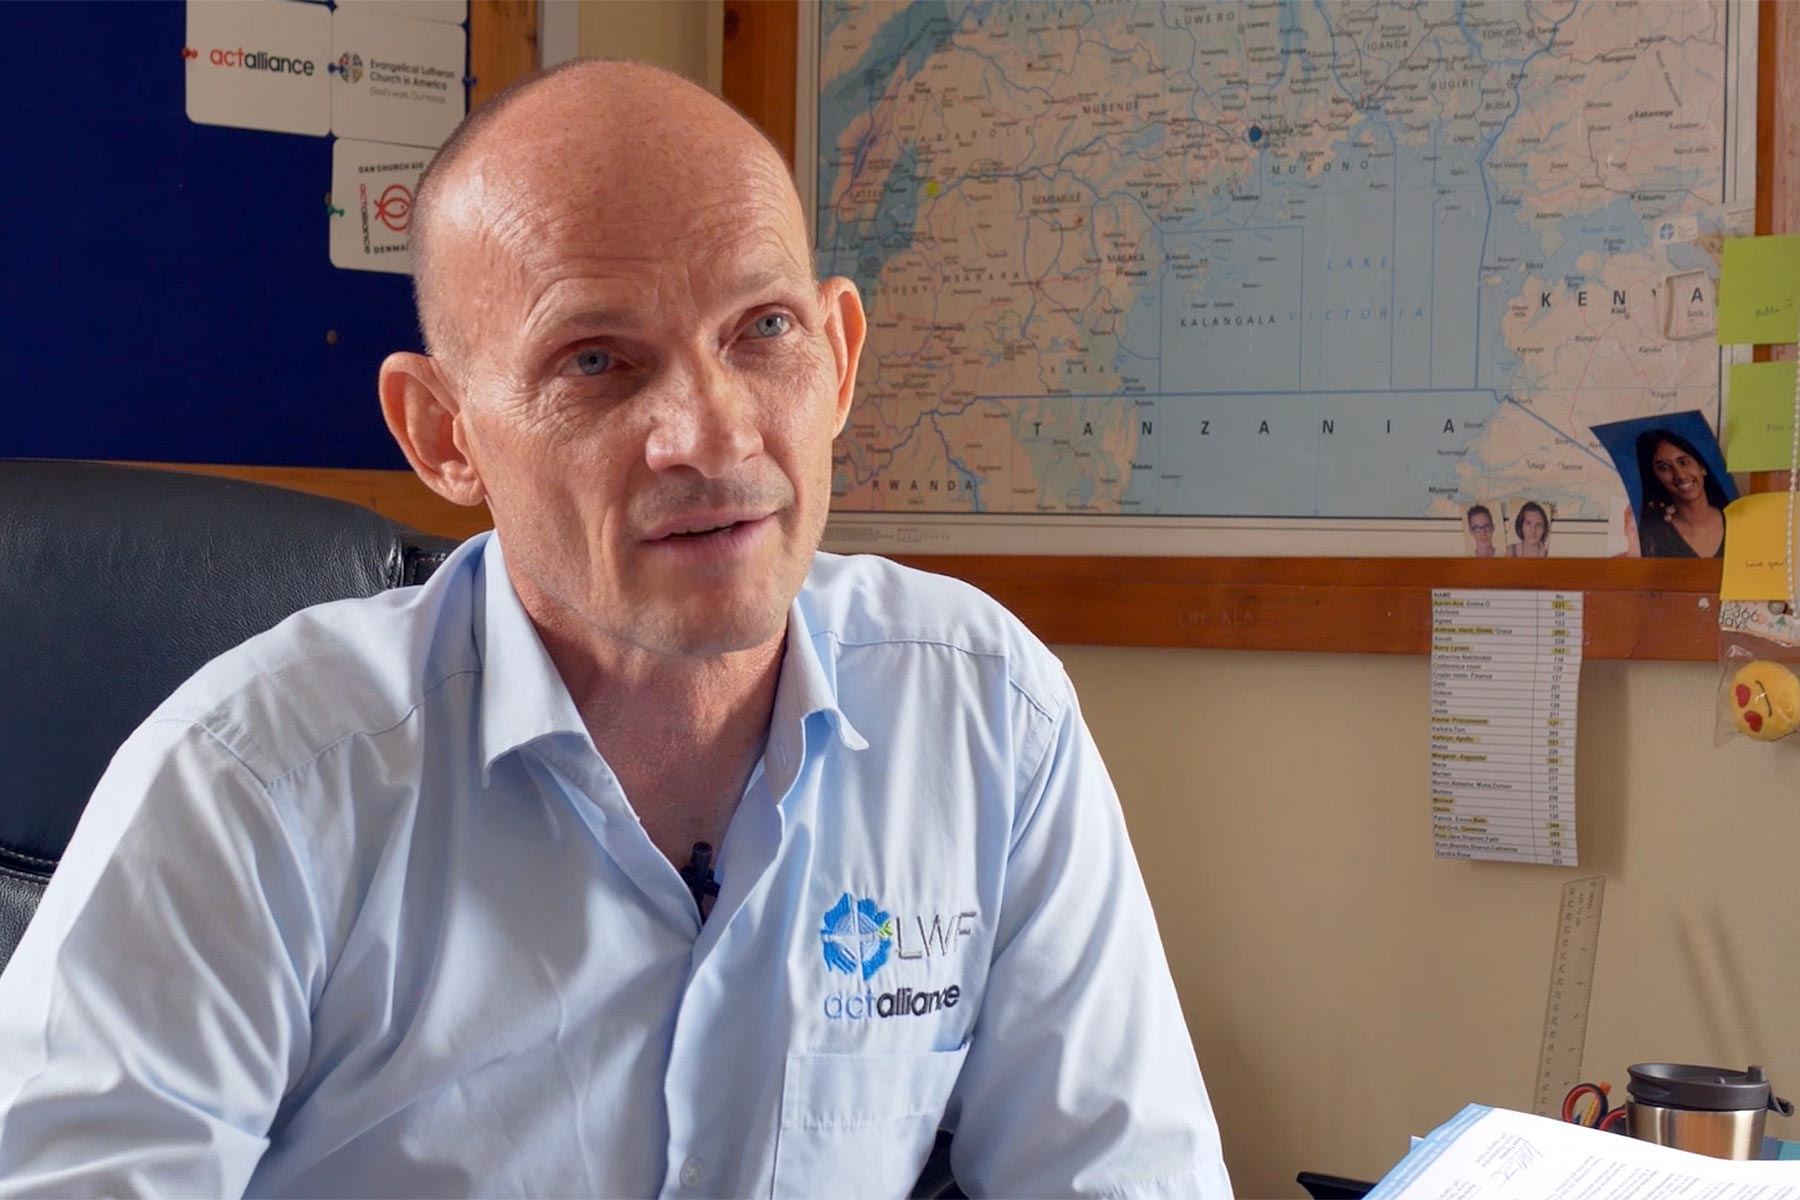 Jesse Kamstra, LWF Country Representative in Uganda, explains how staff are responding to the crisis.